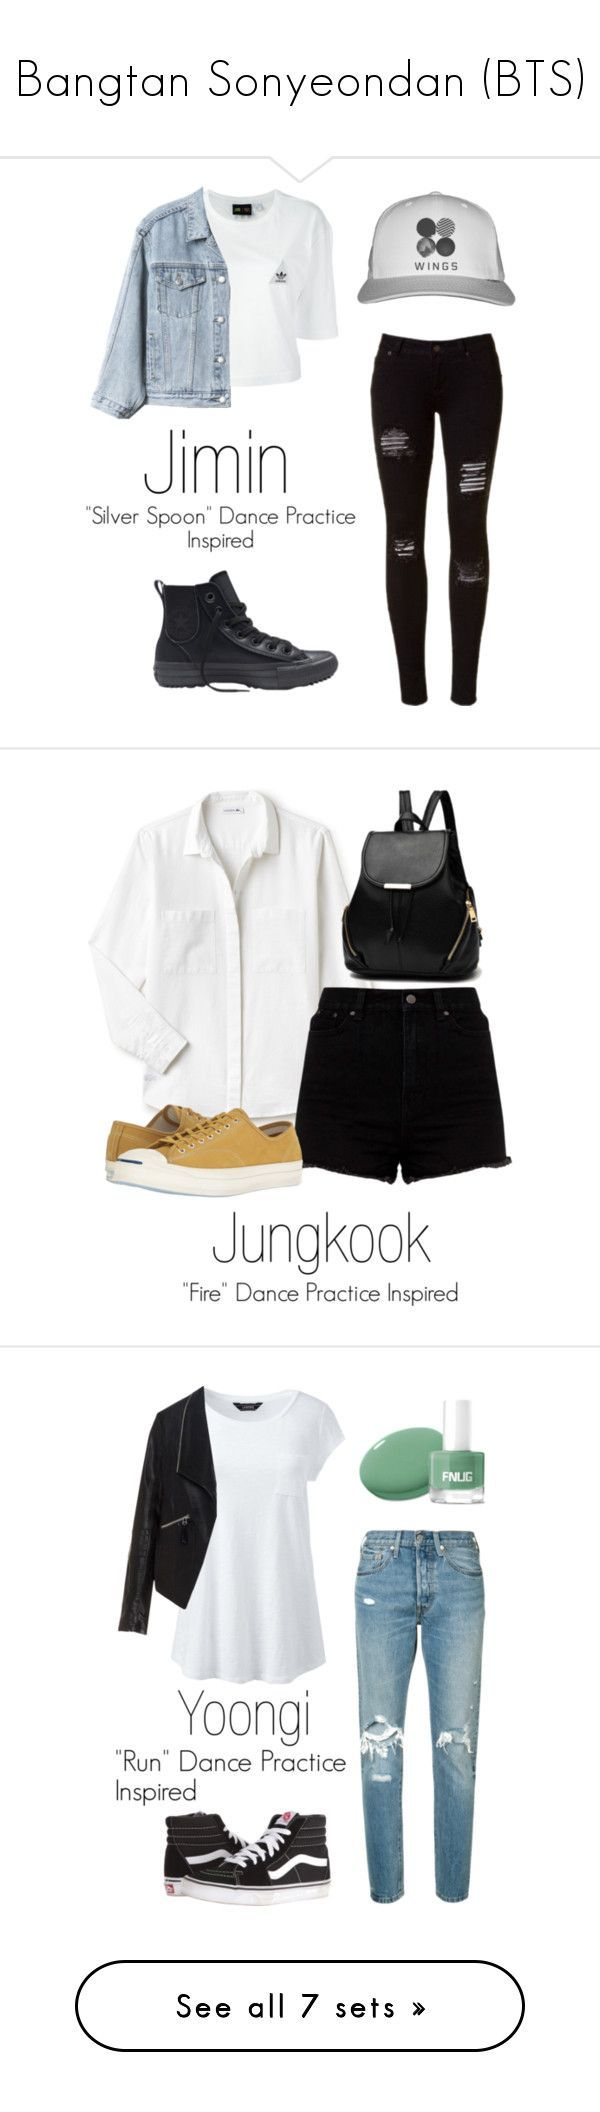 """""""Bangtan Sonyeondan (BTS)"""" by mochimchimus on Polyvore featuring bts, adidas, Gap, Converse, Lacoste, Lands' End, Levi's, Zizzi, Vans and Old Navy"""